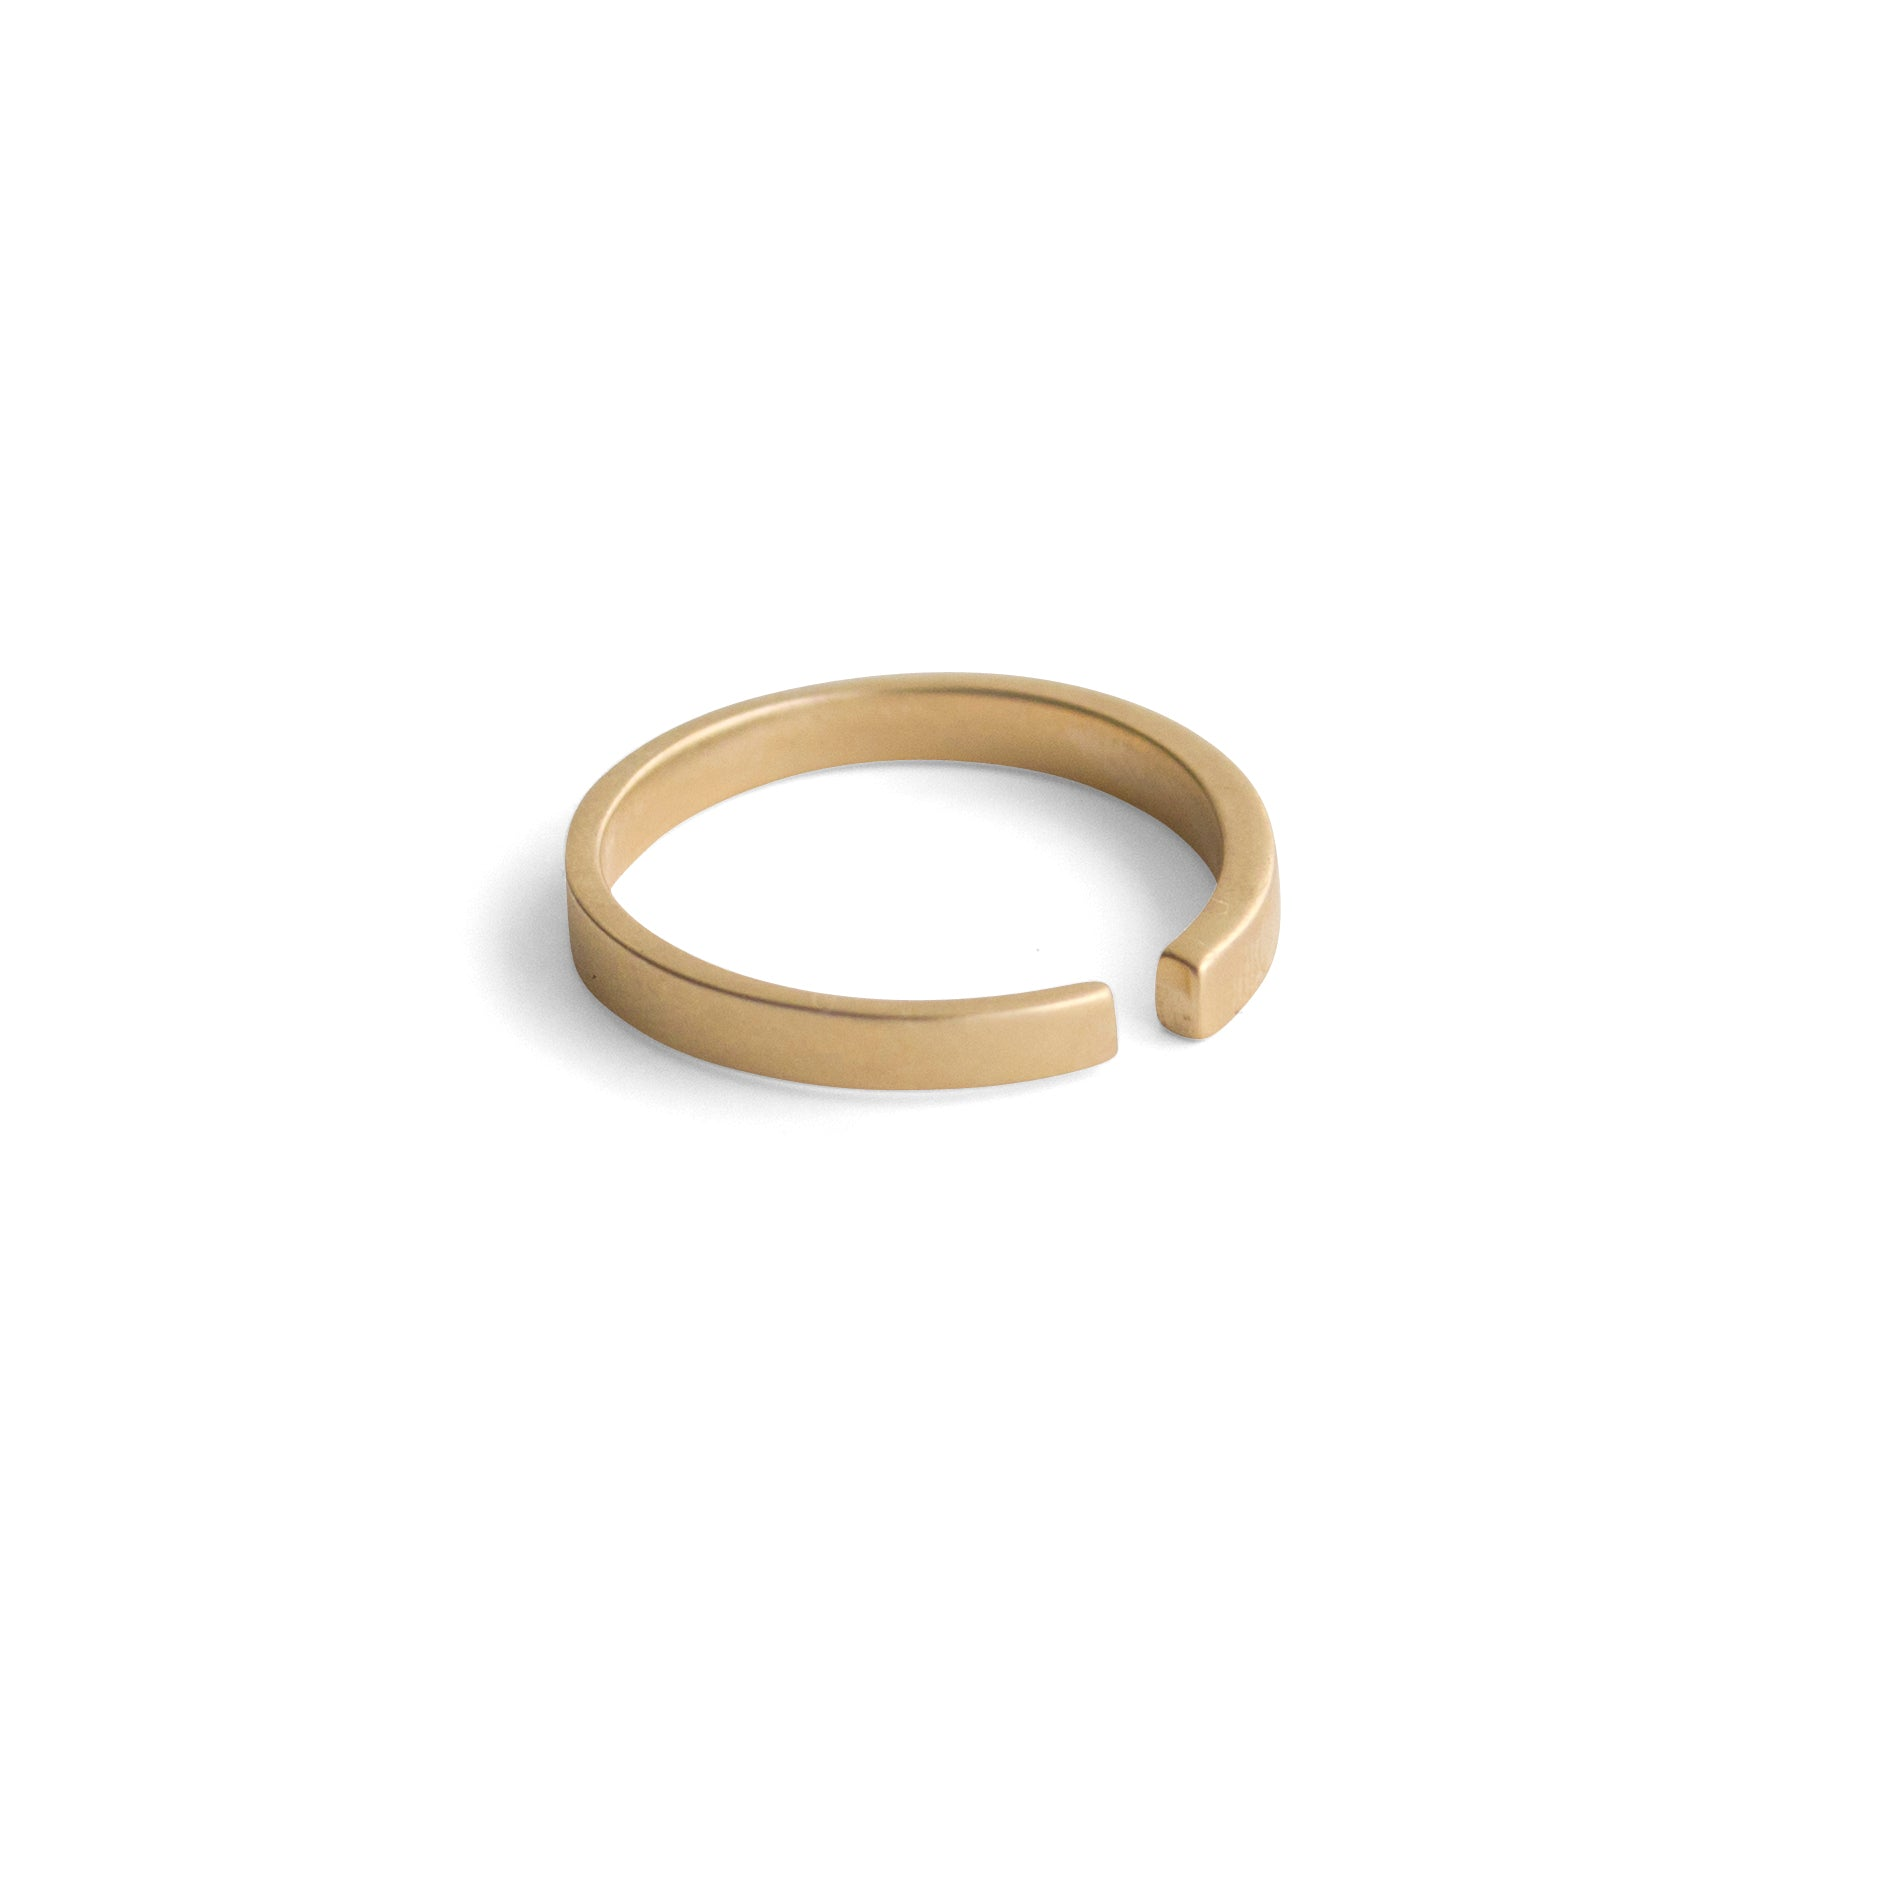 14k yellow gold / 7 tapered stake band